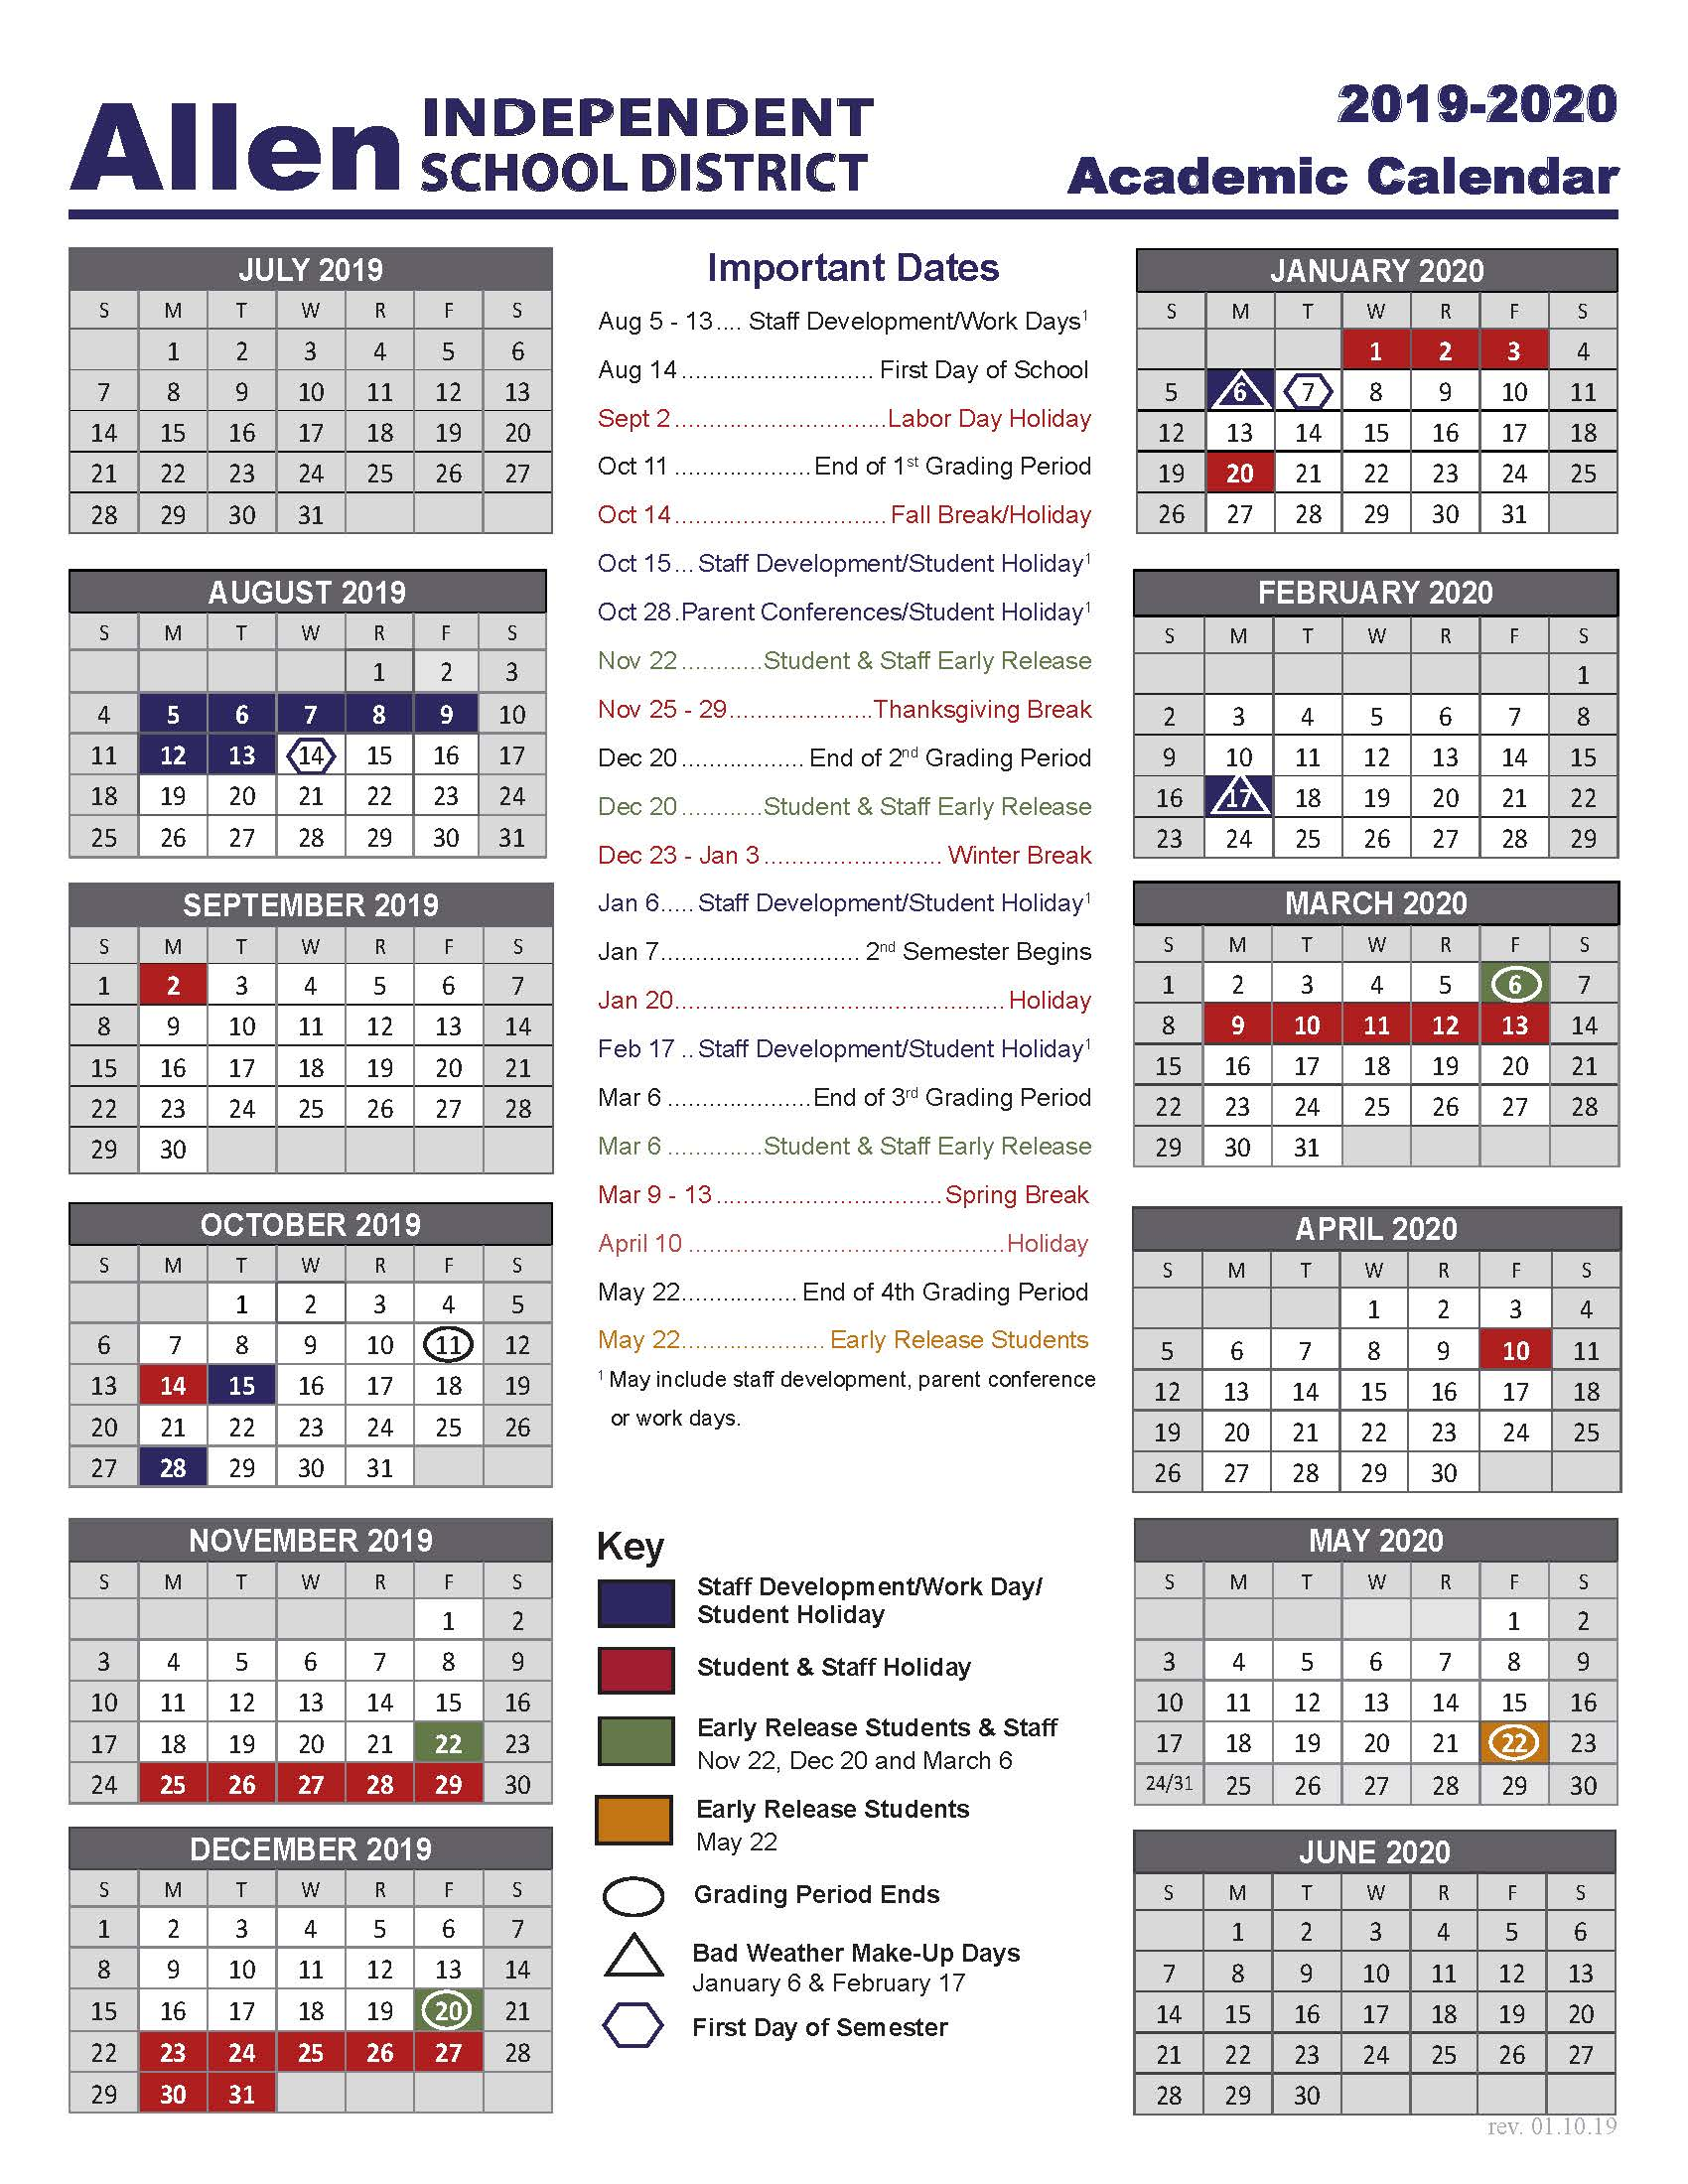 Image link to 2019-2020 Academic Calendar